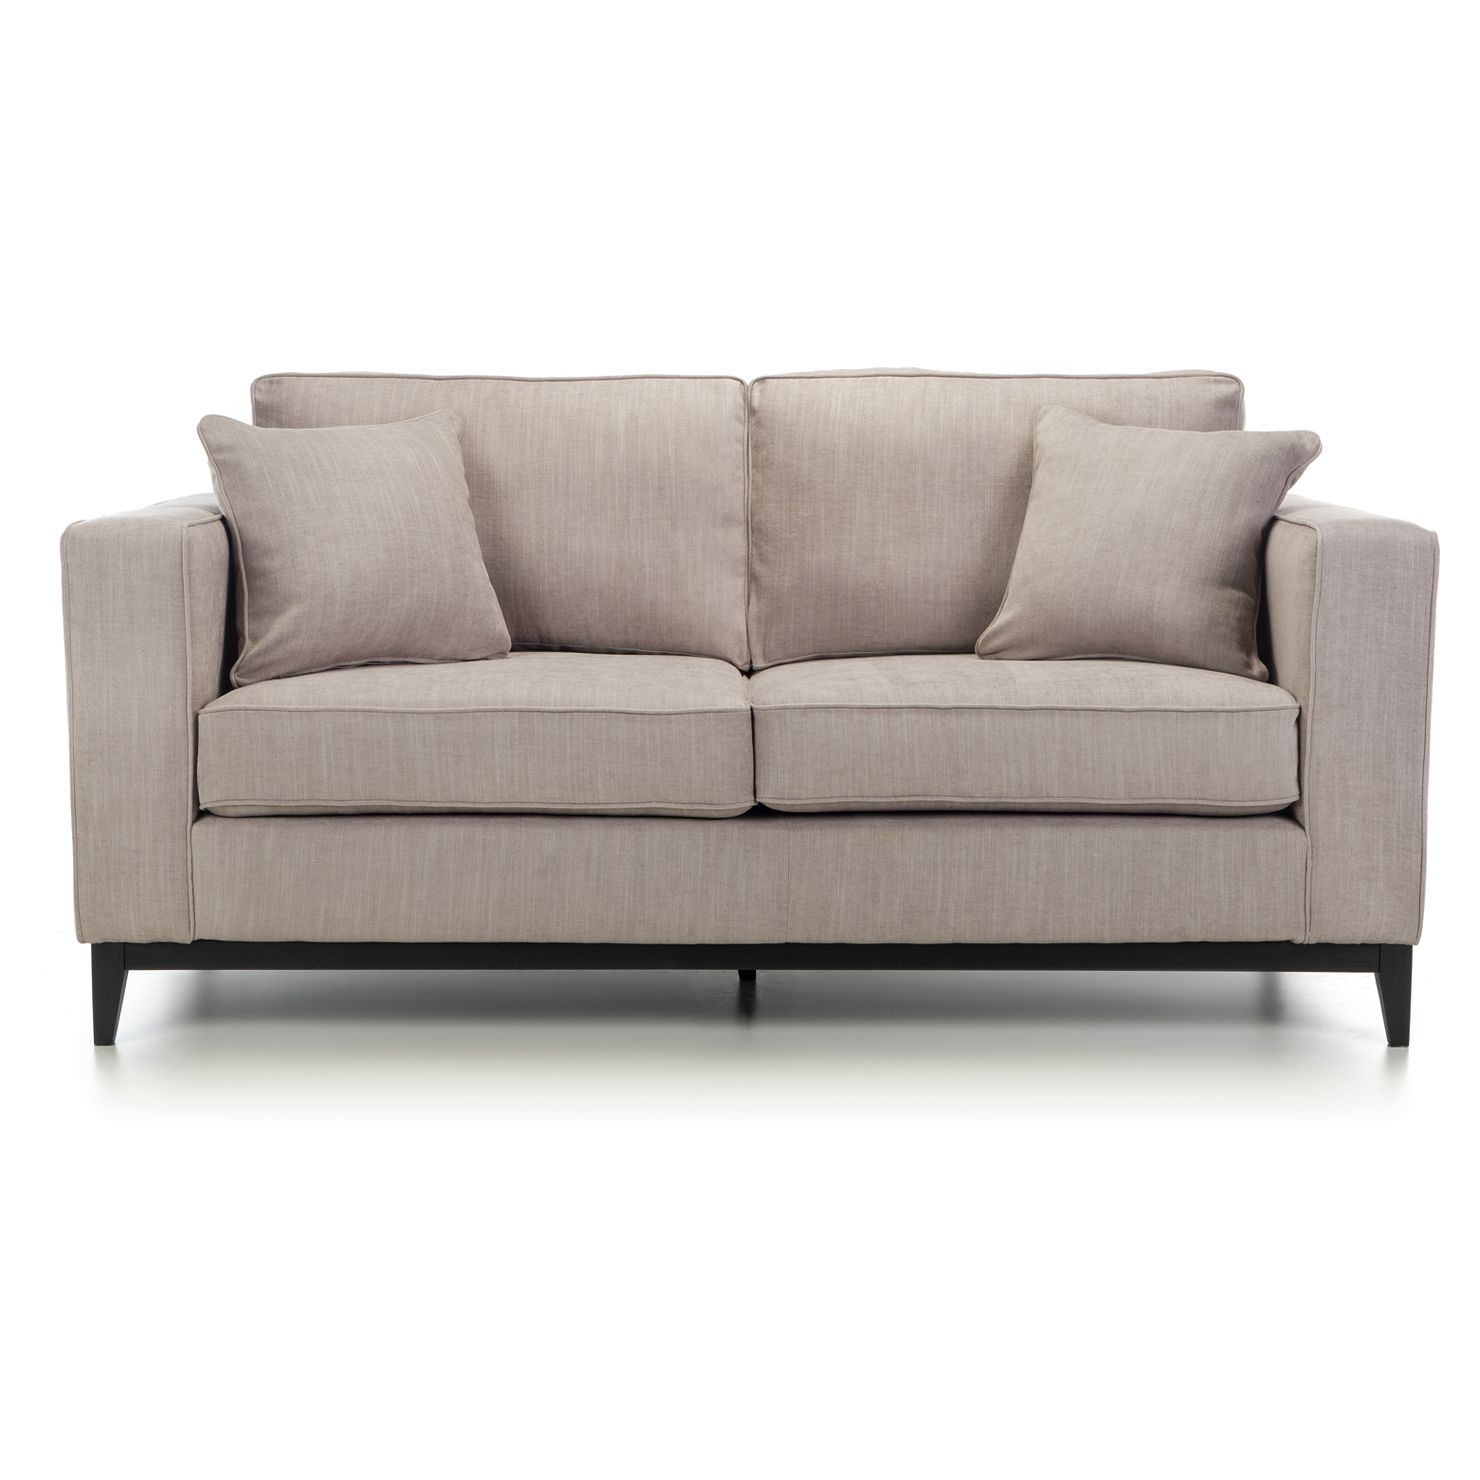 Adelaide 3 Seater Sofa In Mink With Walnut Plinth Achica Sofa 3 Seater Sofa Sale Design